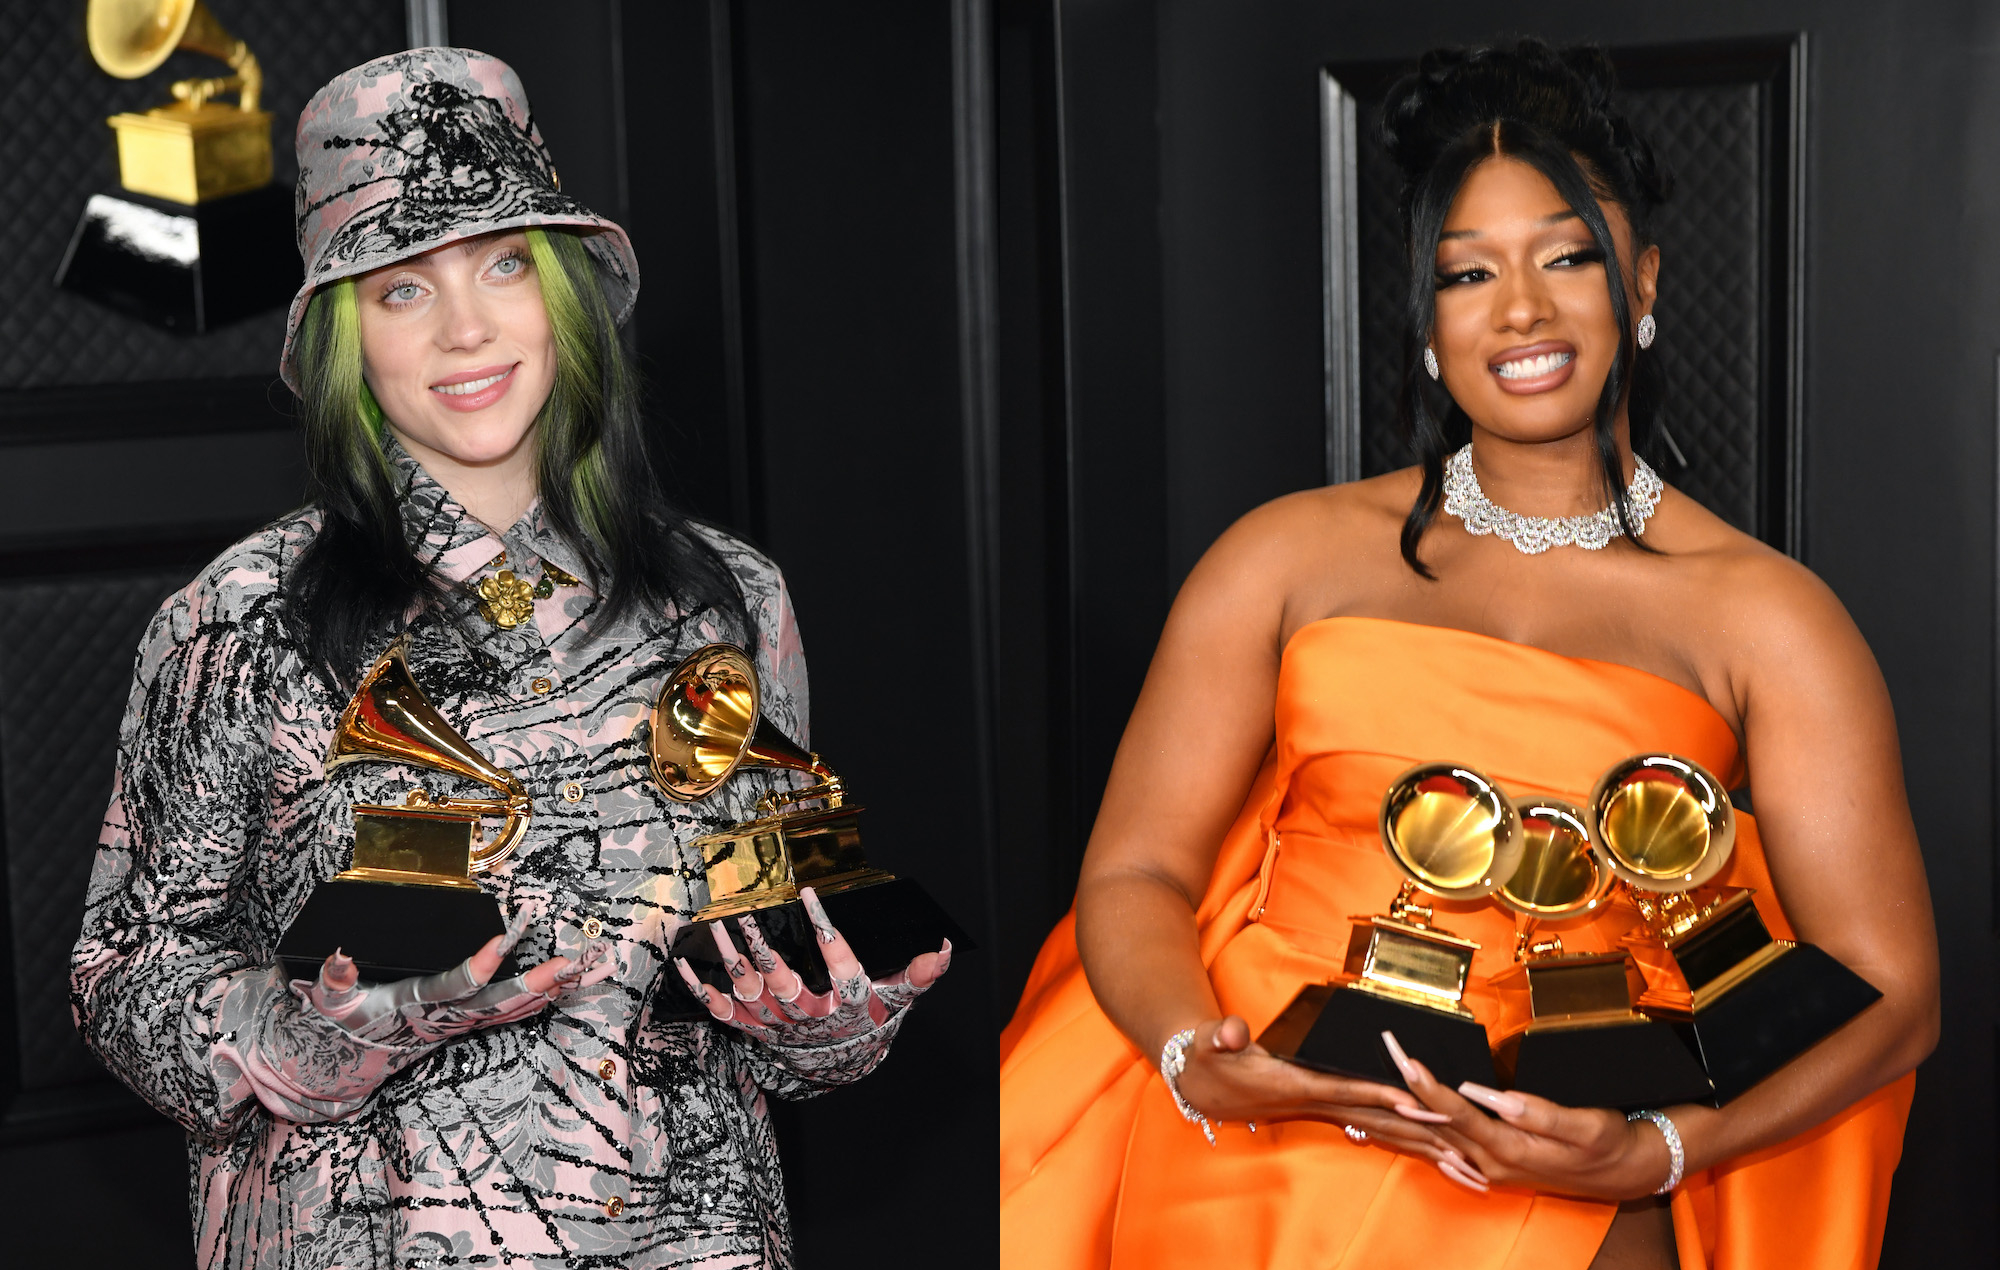 """""""billie-eilish-gushes-over-megan-thee-stallion-during-grammy-acceptance-speech-says-she-deserved-to-win-record-of-the-year-instead"""""""